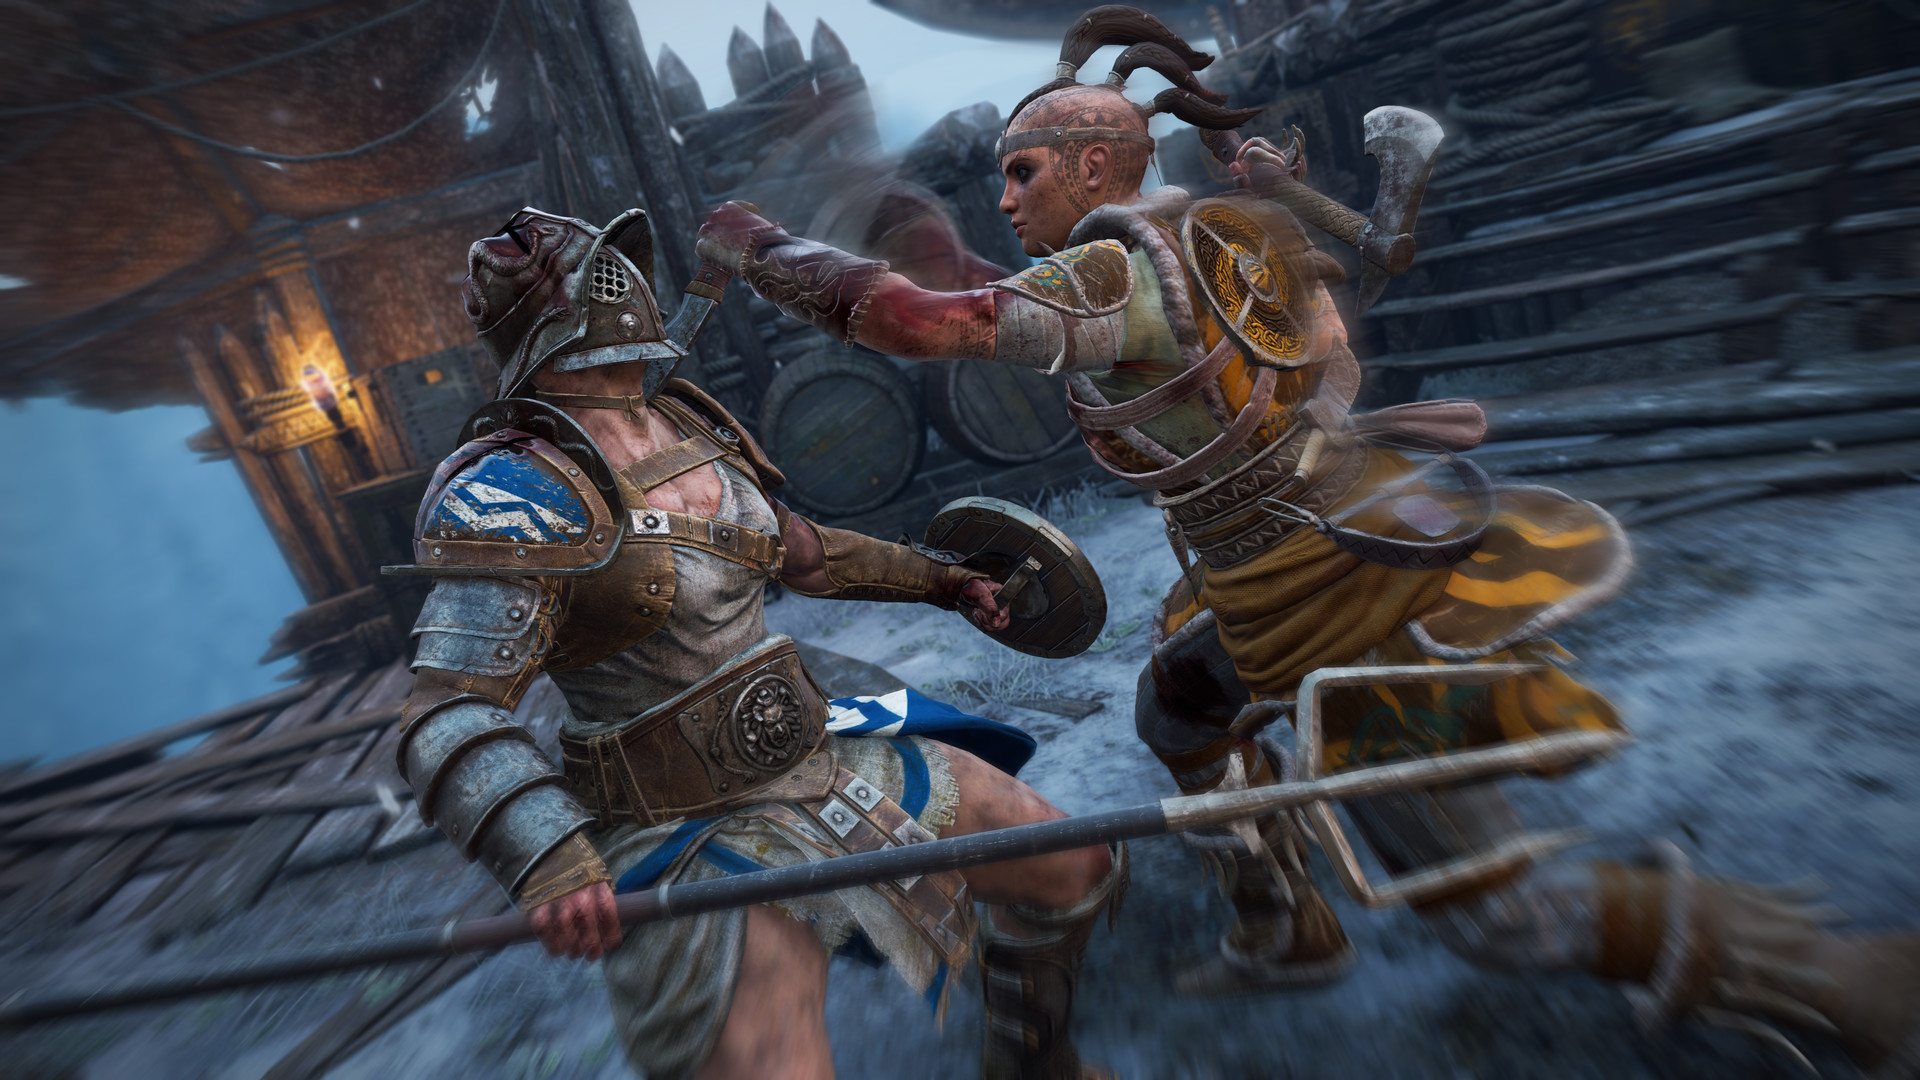 For Honor Cross Platform - Does it Support Cross Platform Play